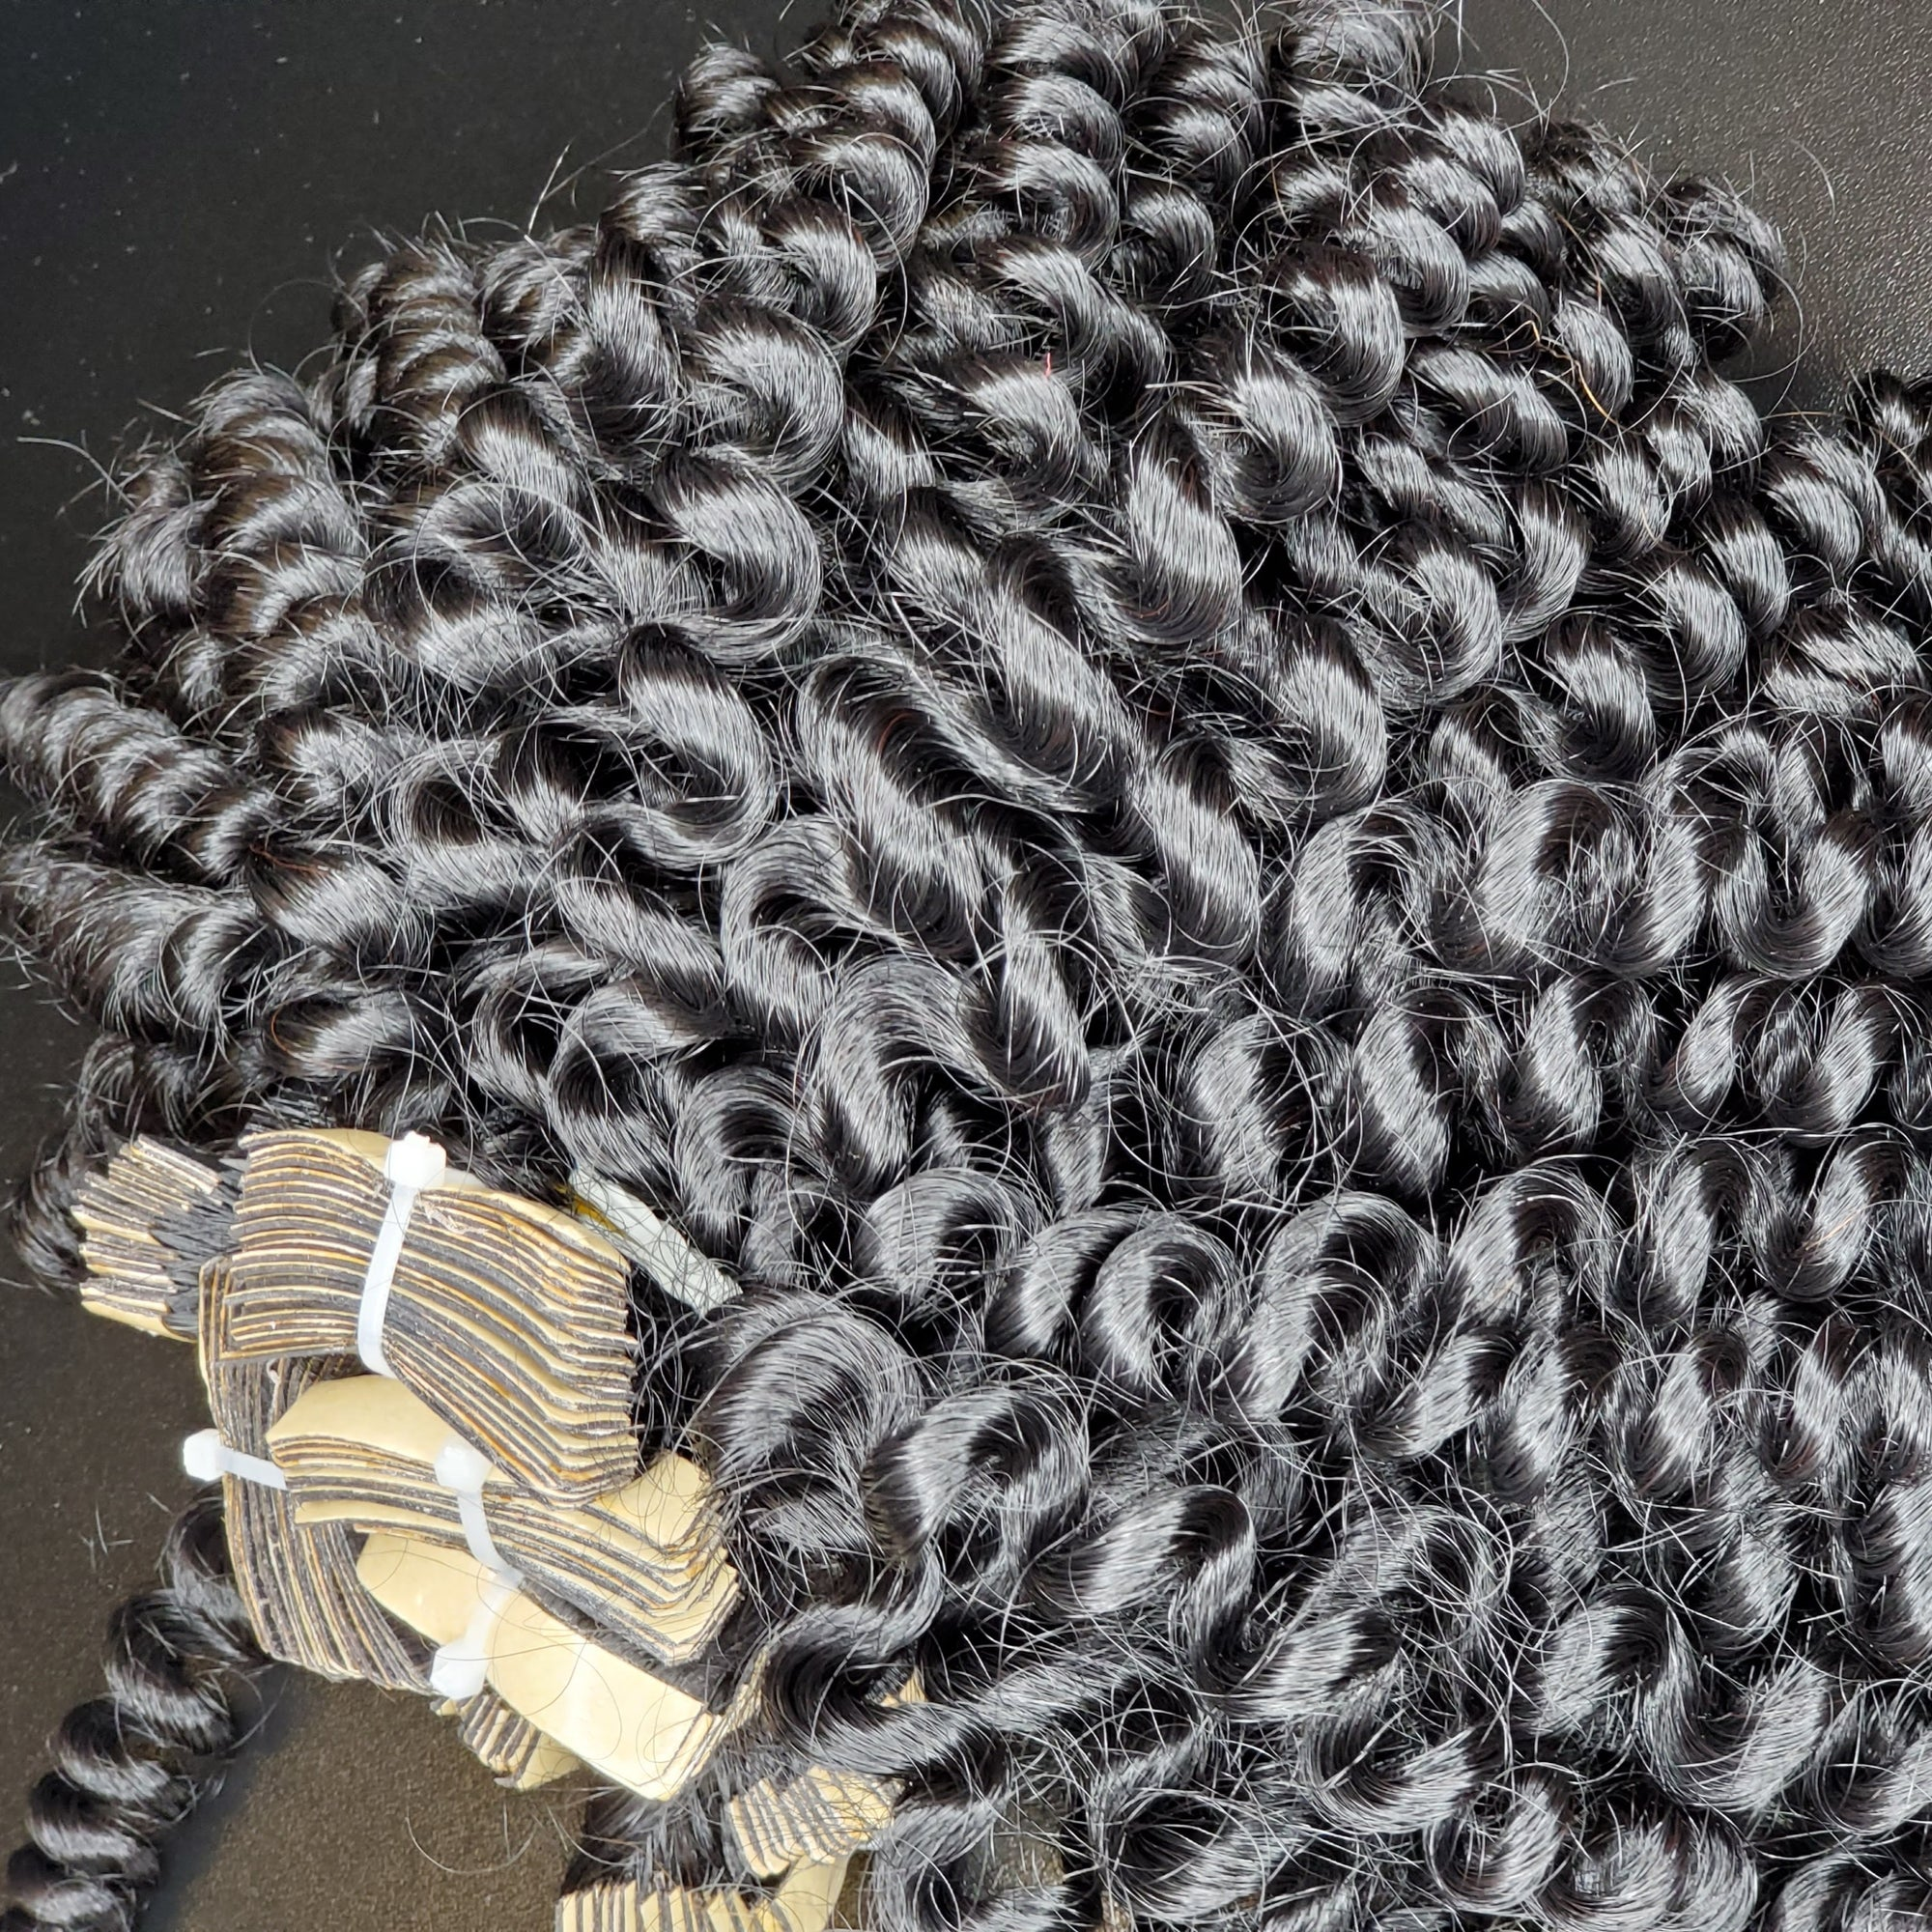 Type 3 Textured Extensions (Curly)